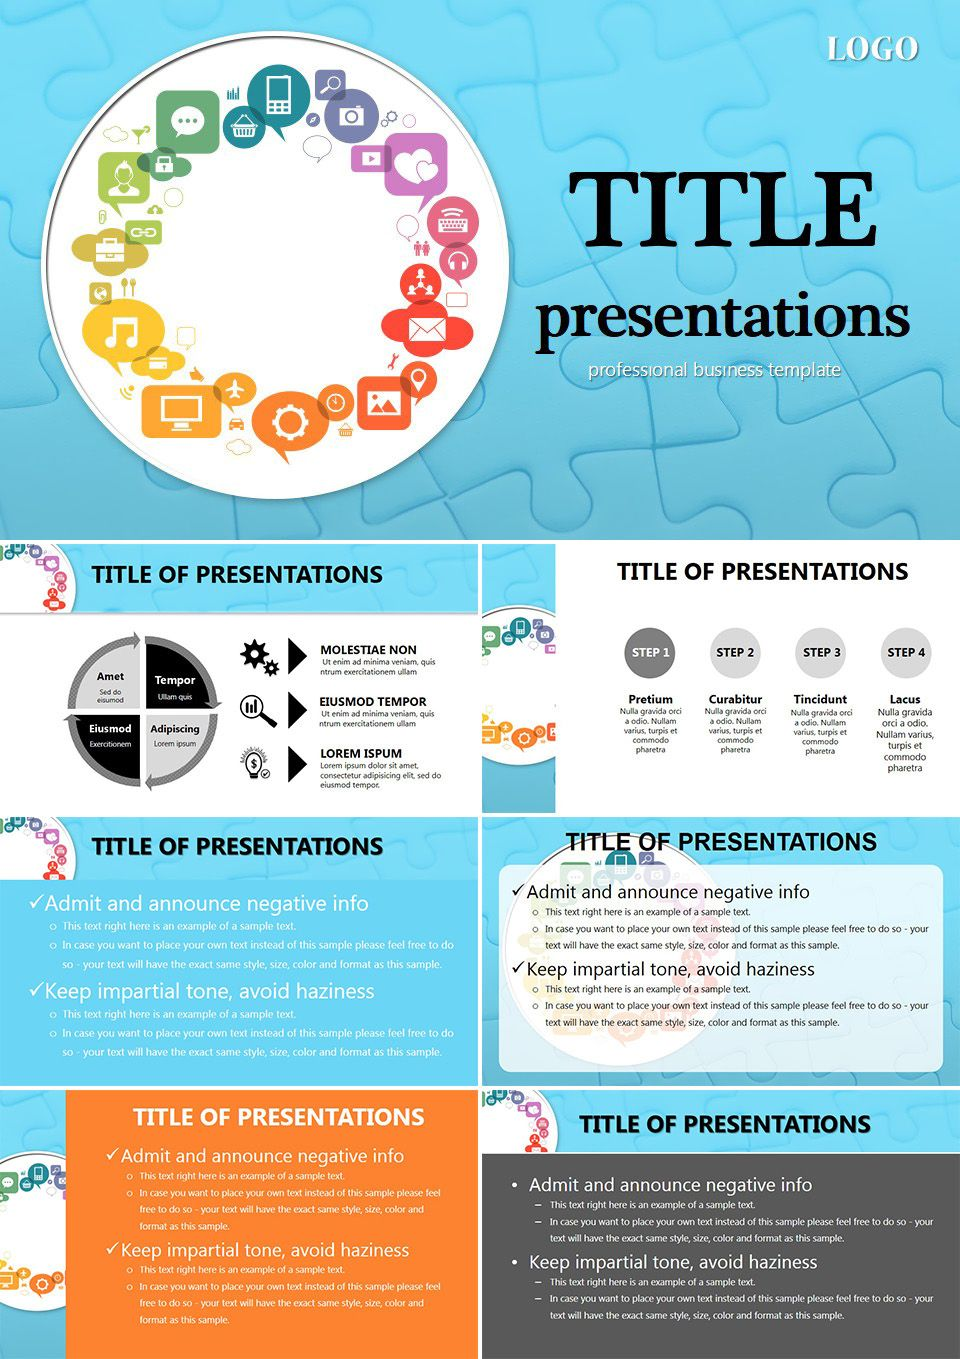 Revenue recognition accounting update powerpoint templates revenue recognition accounting update powerpoint templates toneelgroepblik Image collections